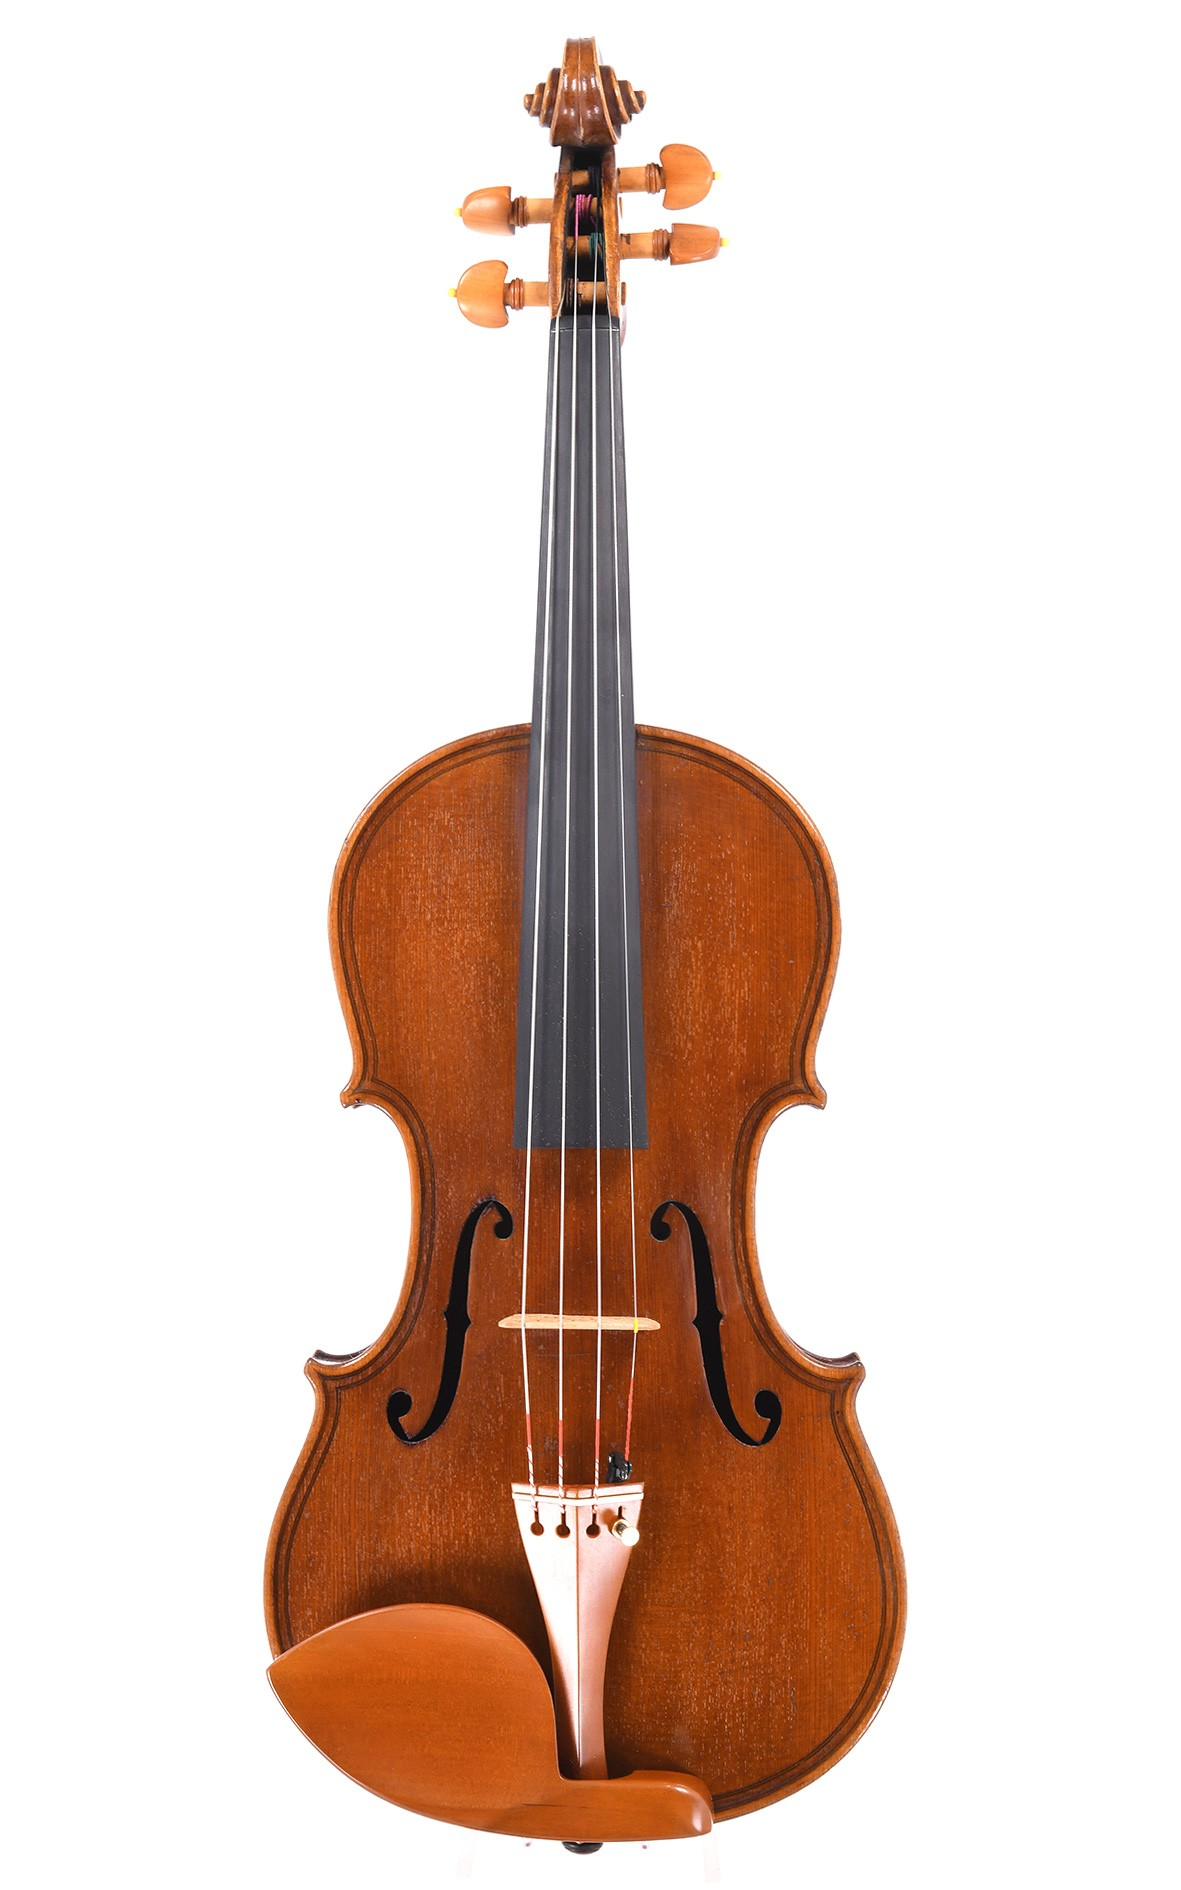 German violin after Giovanni Paolo Maggini, c.1920